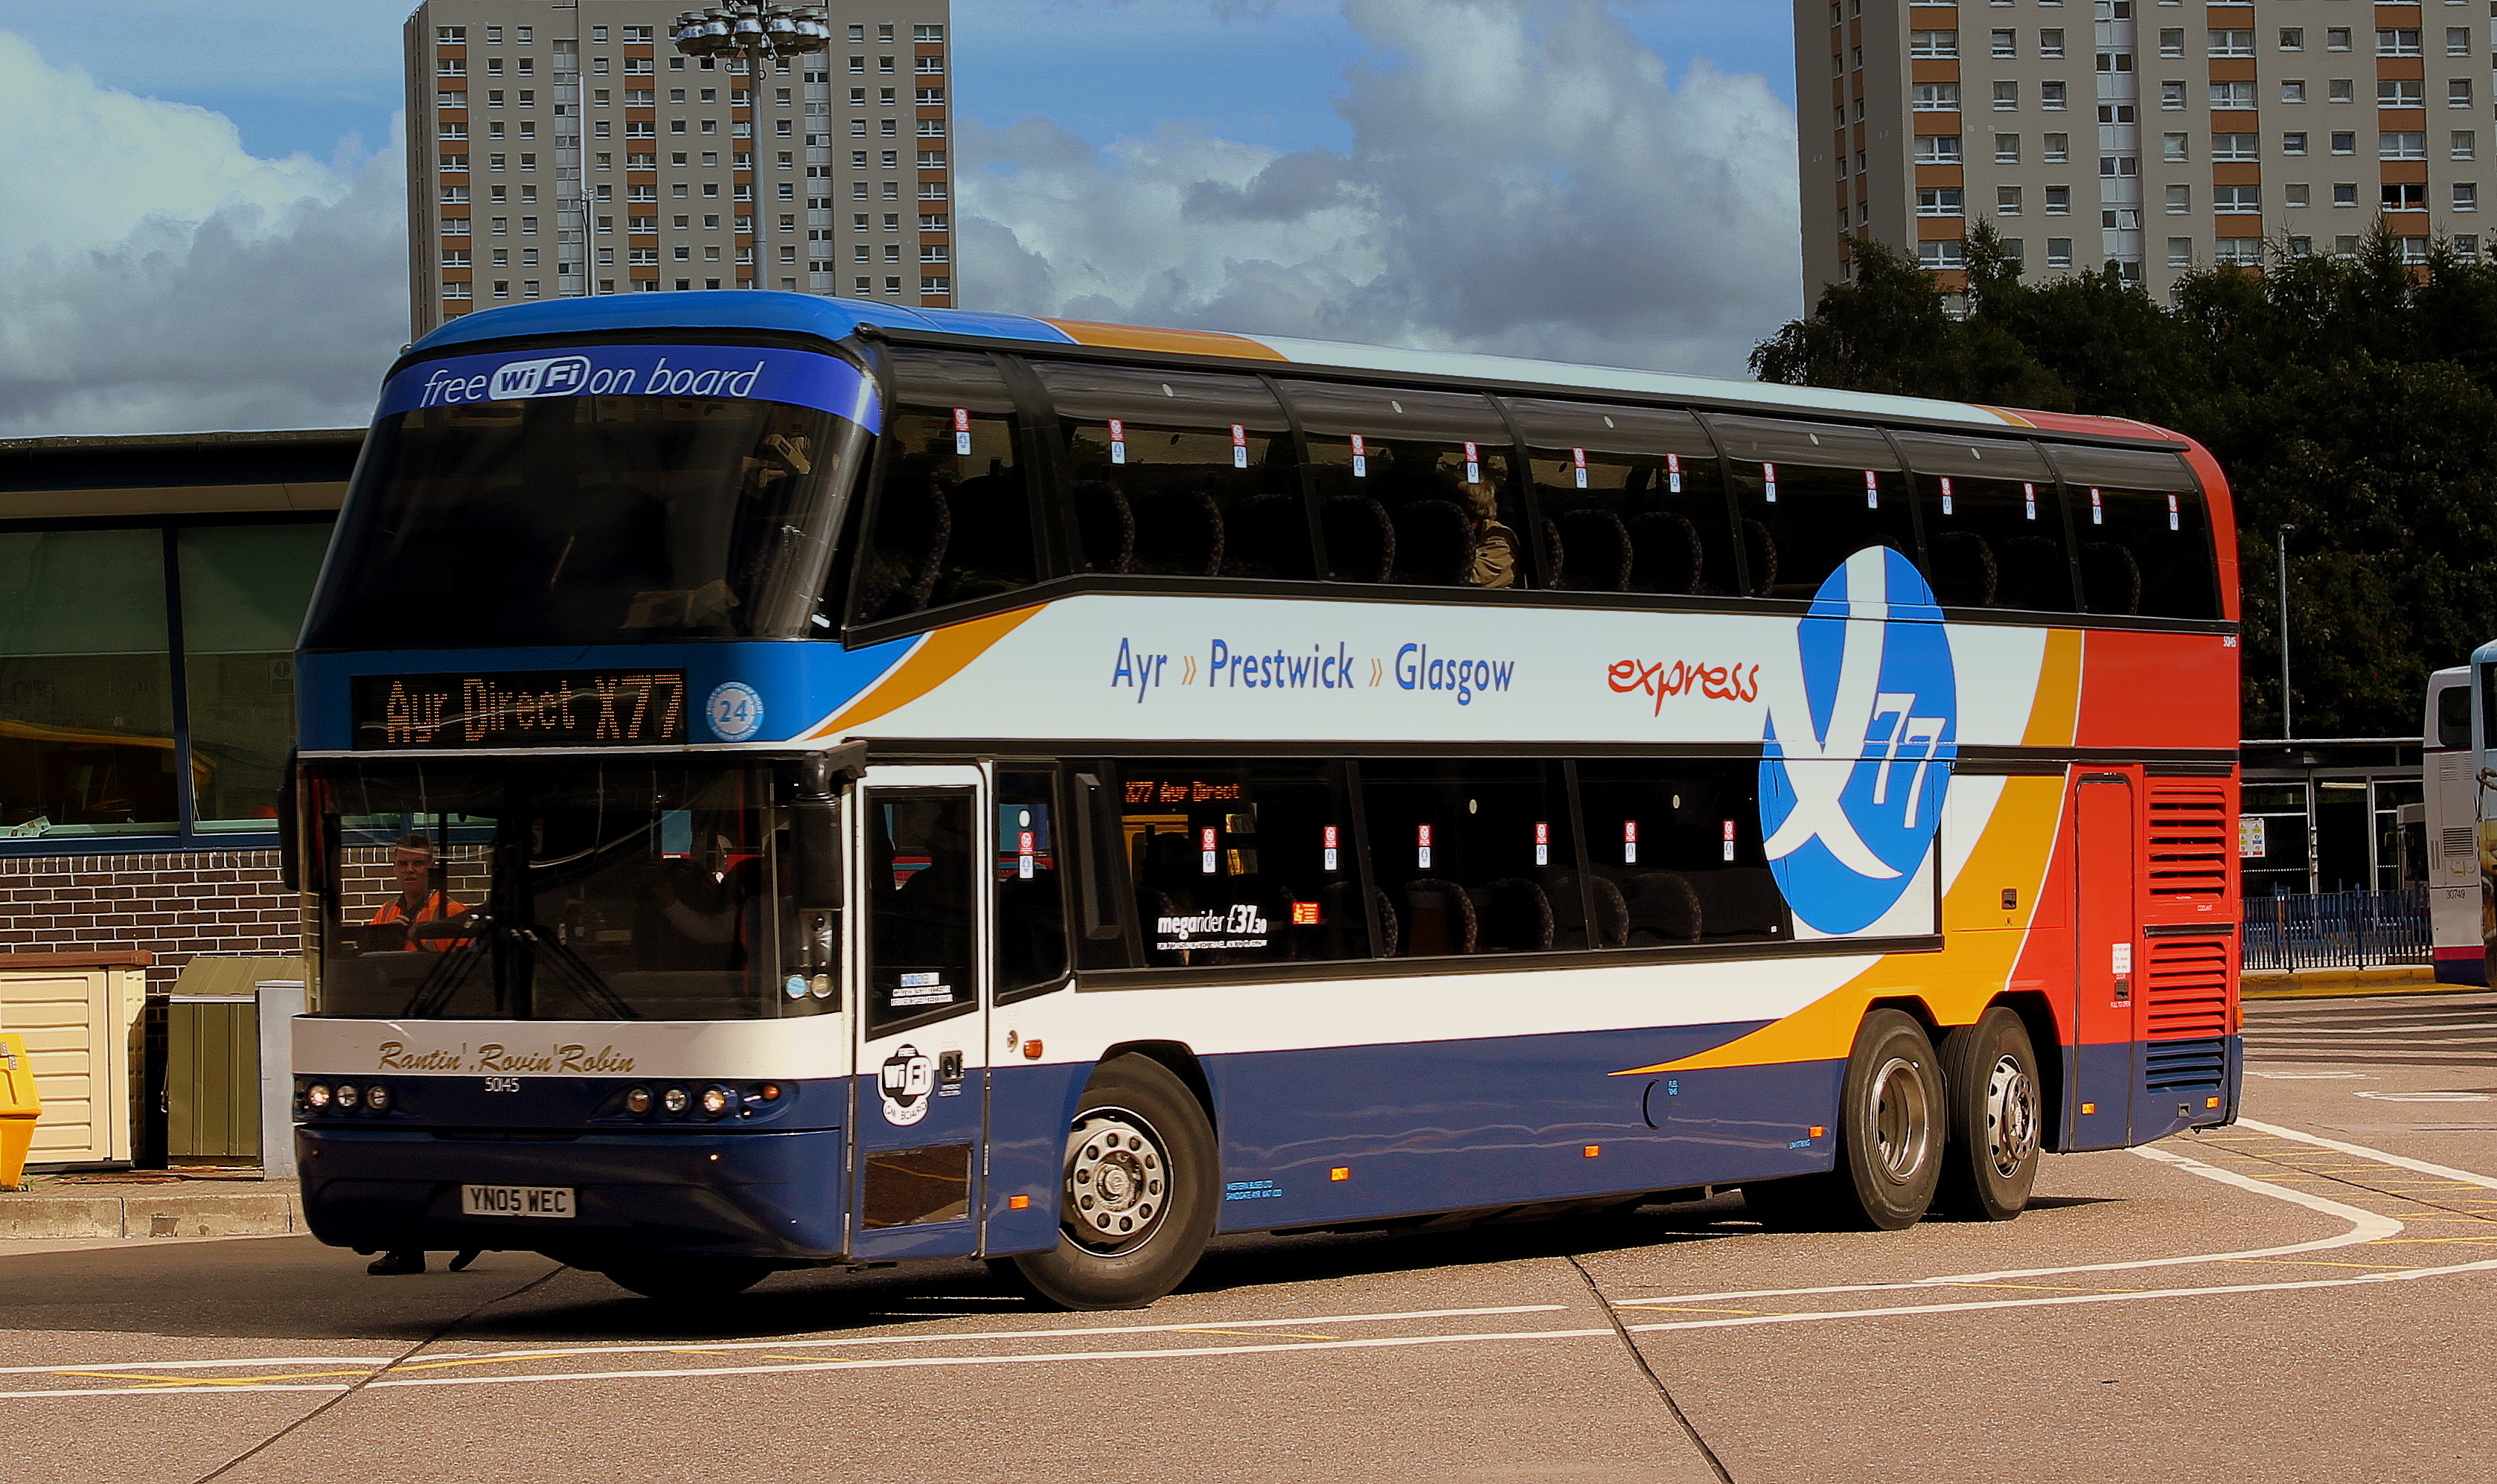 File:STAGECOACH X77 SERVICE NEOPLAN DOUBLE DECK COACH AT GLSGOW